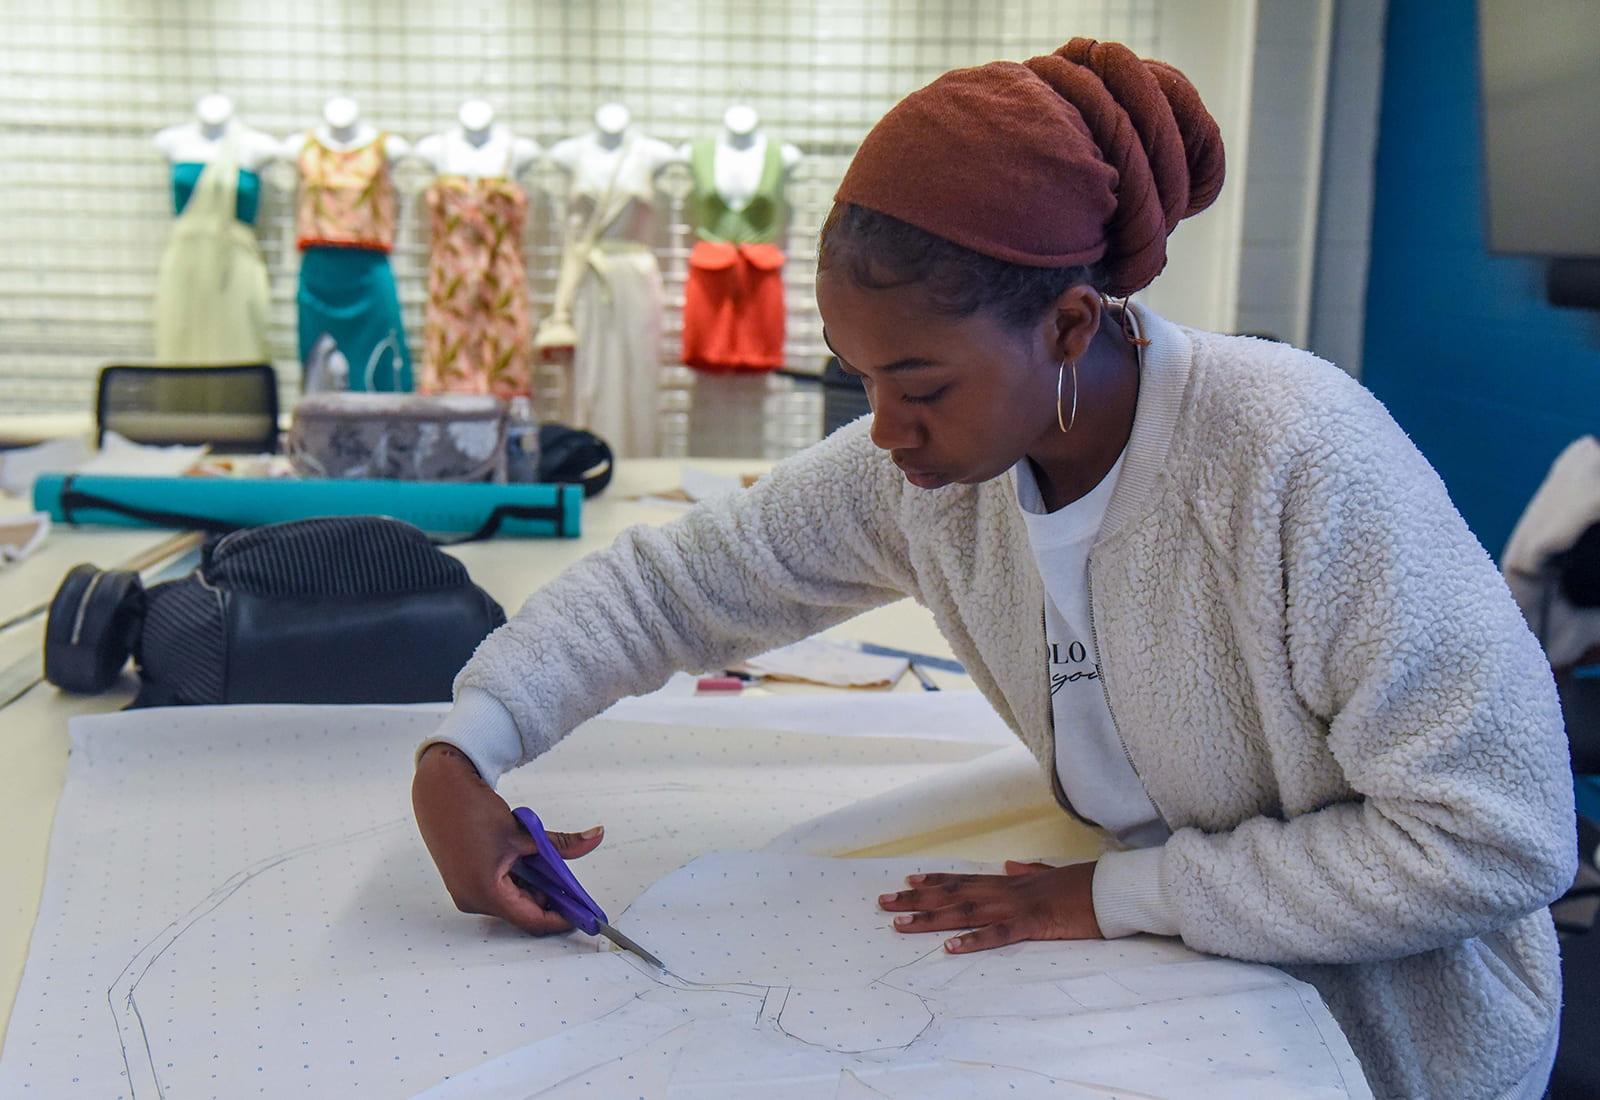 A student cutting out a clothing pattern outline